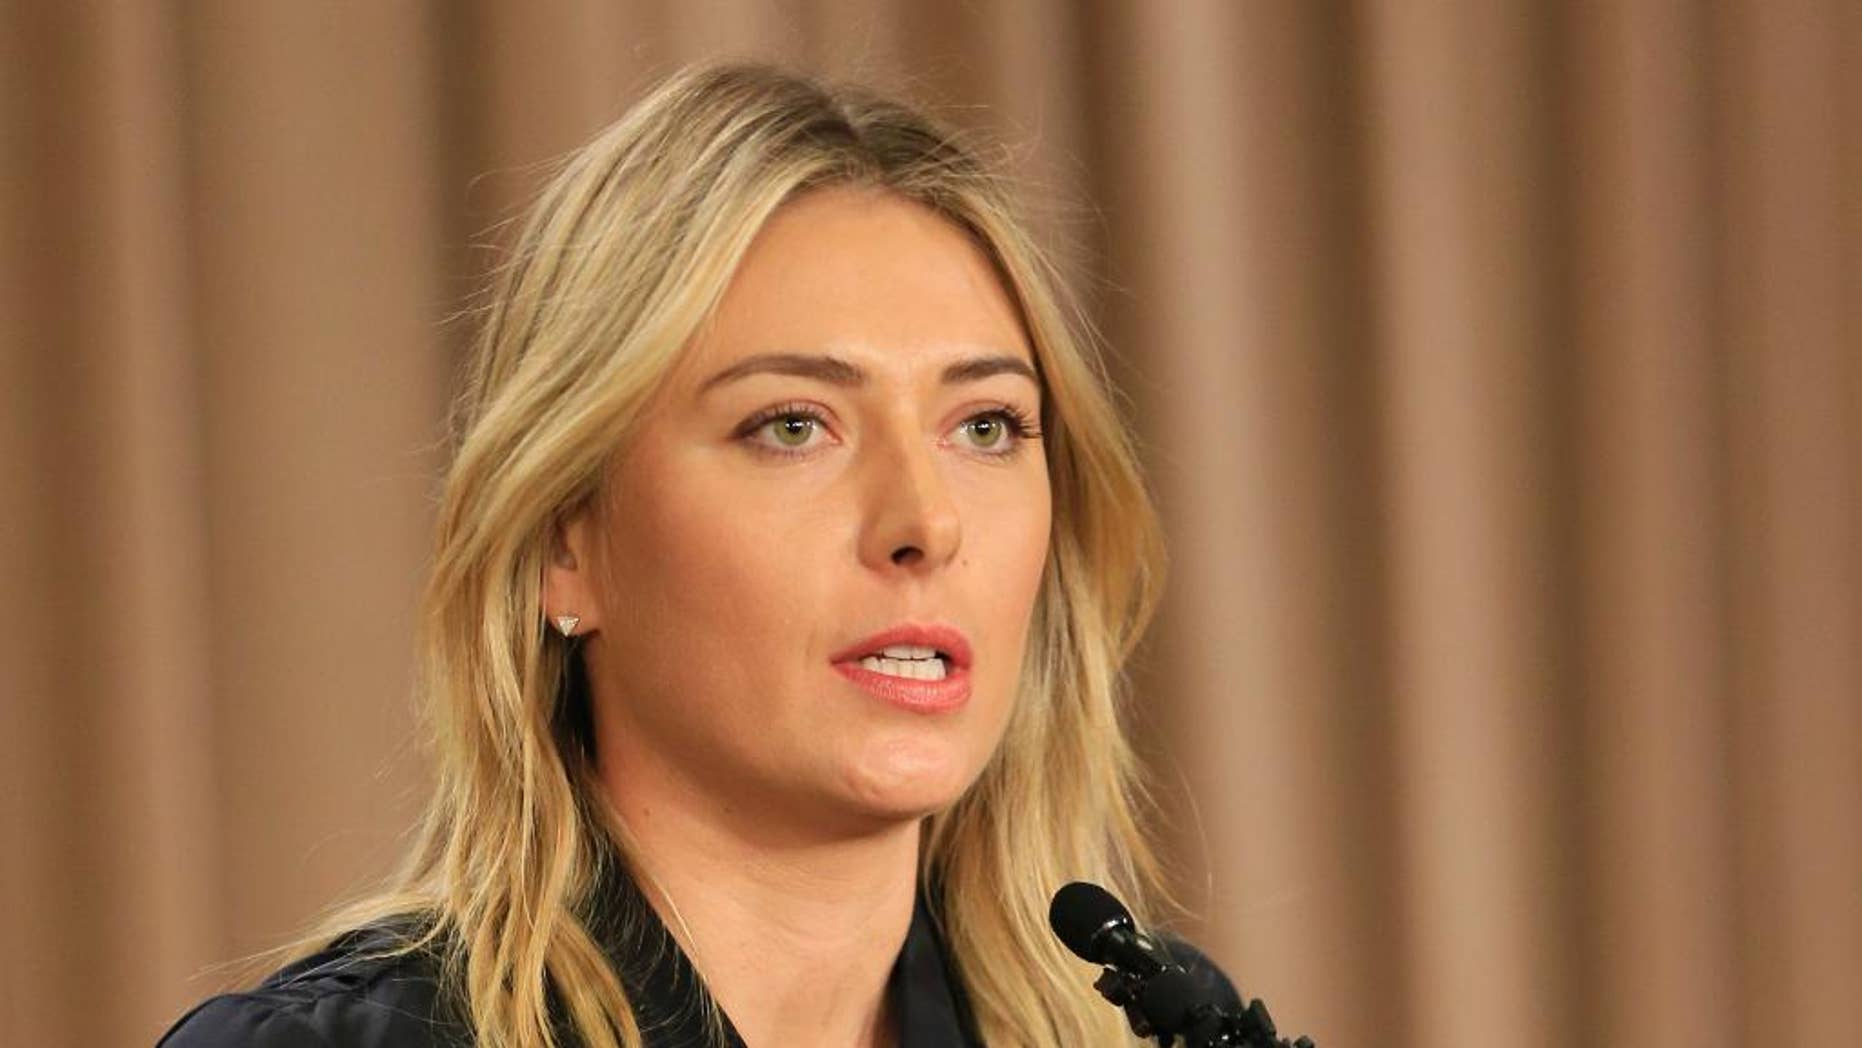 """FILE - In this March 7, 2016, file photo, Maria Sharapova speaks about her failed drug test during a news conference in Los Angeles.   International Tennis Federation president David Haggerty Wednesday April 20, 2016 said a disciplinary hearing is scheduled in Maria Sharapova's doping case, with a ruling possible before Wimbledon. Haggerty told reporters the independent Tennis Integrity Unit typically takes """"two to three months"""" to process a case. That would suggest a verdict in June.(AP Photo/Damian Dovarganes, File)"""